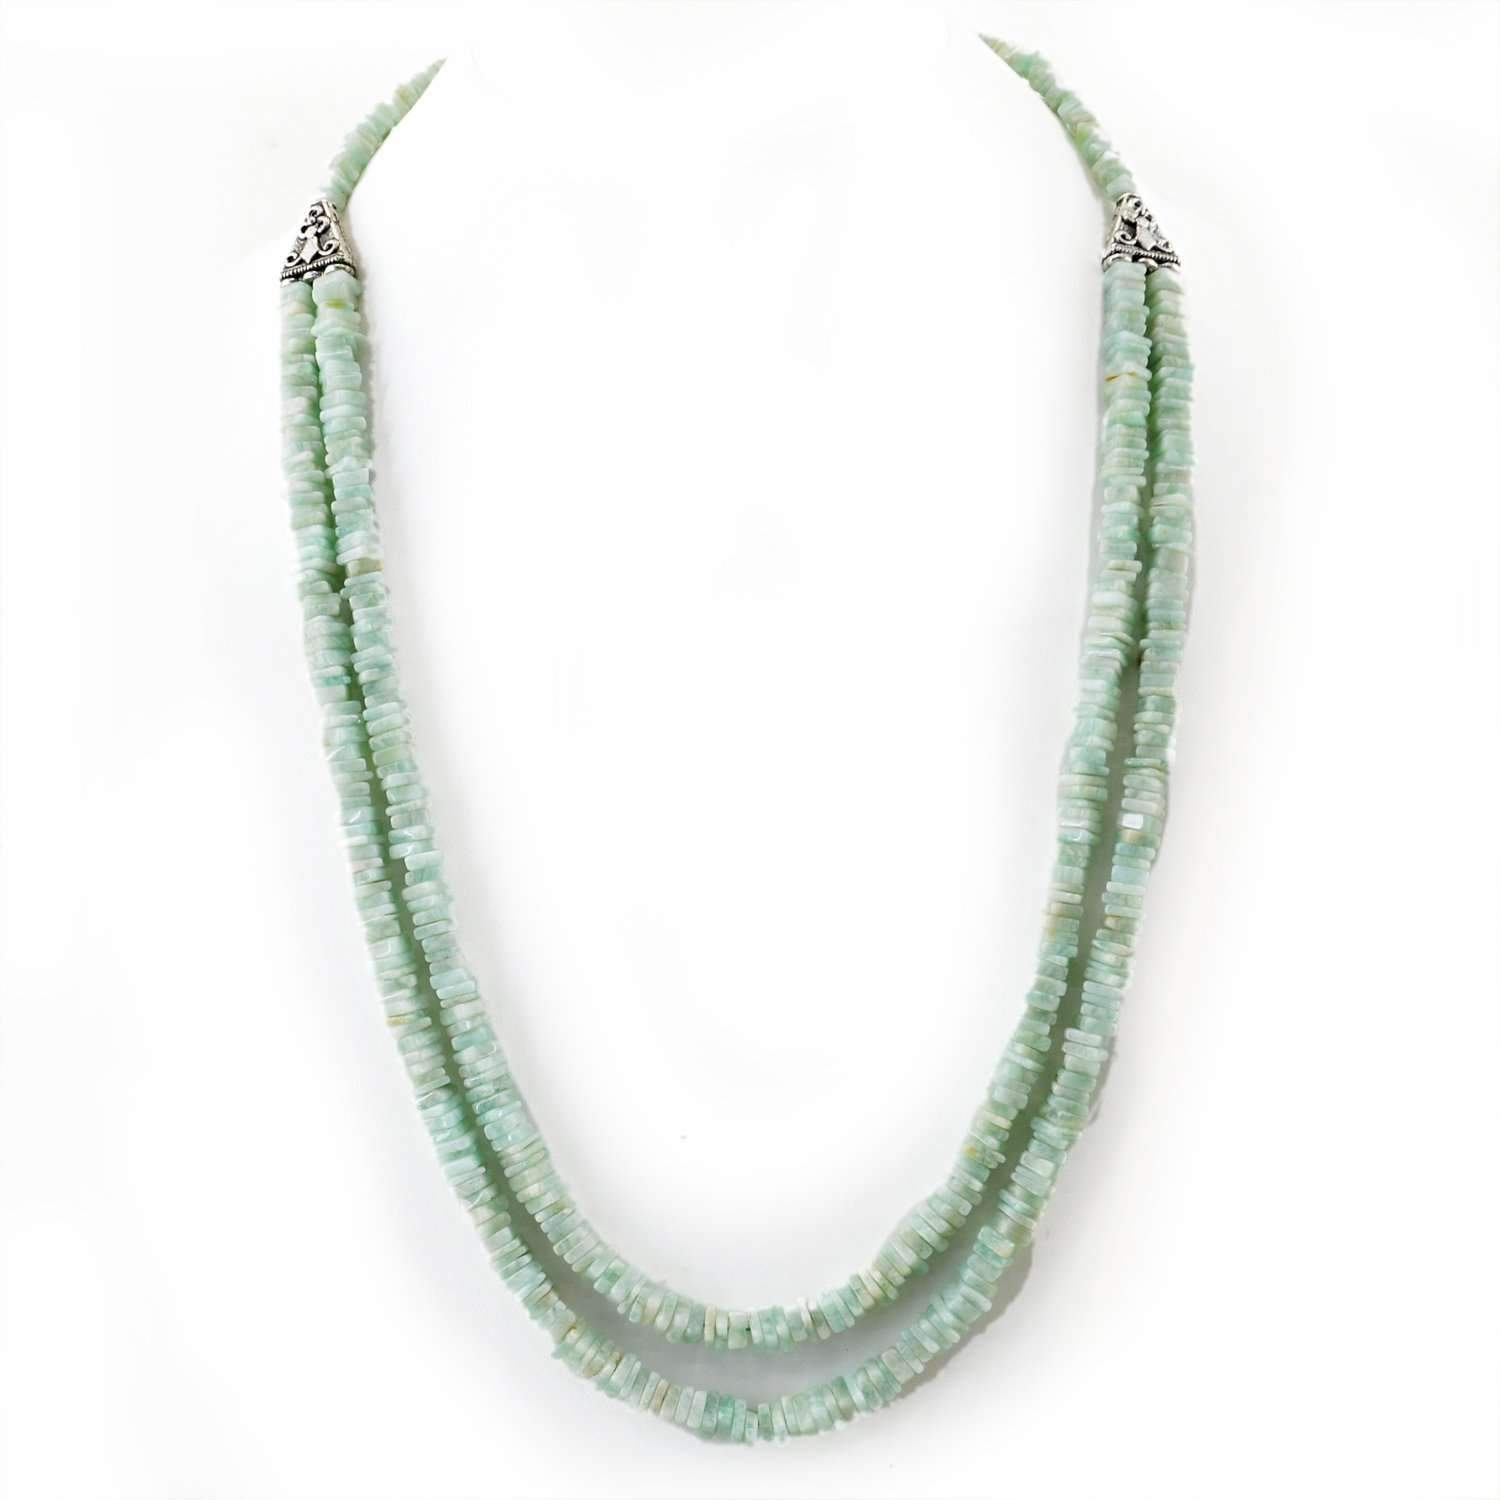 gemsmore:Amazonite Necklace Natural 2 Strand Genuine Beads - Best Quality